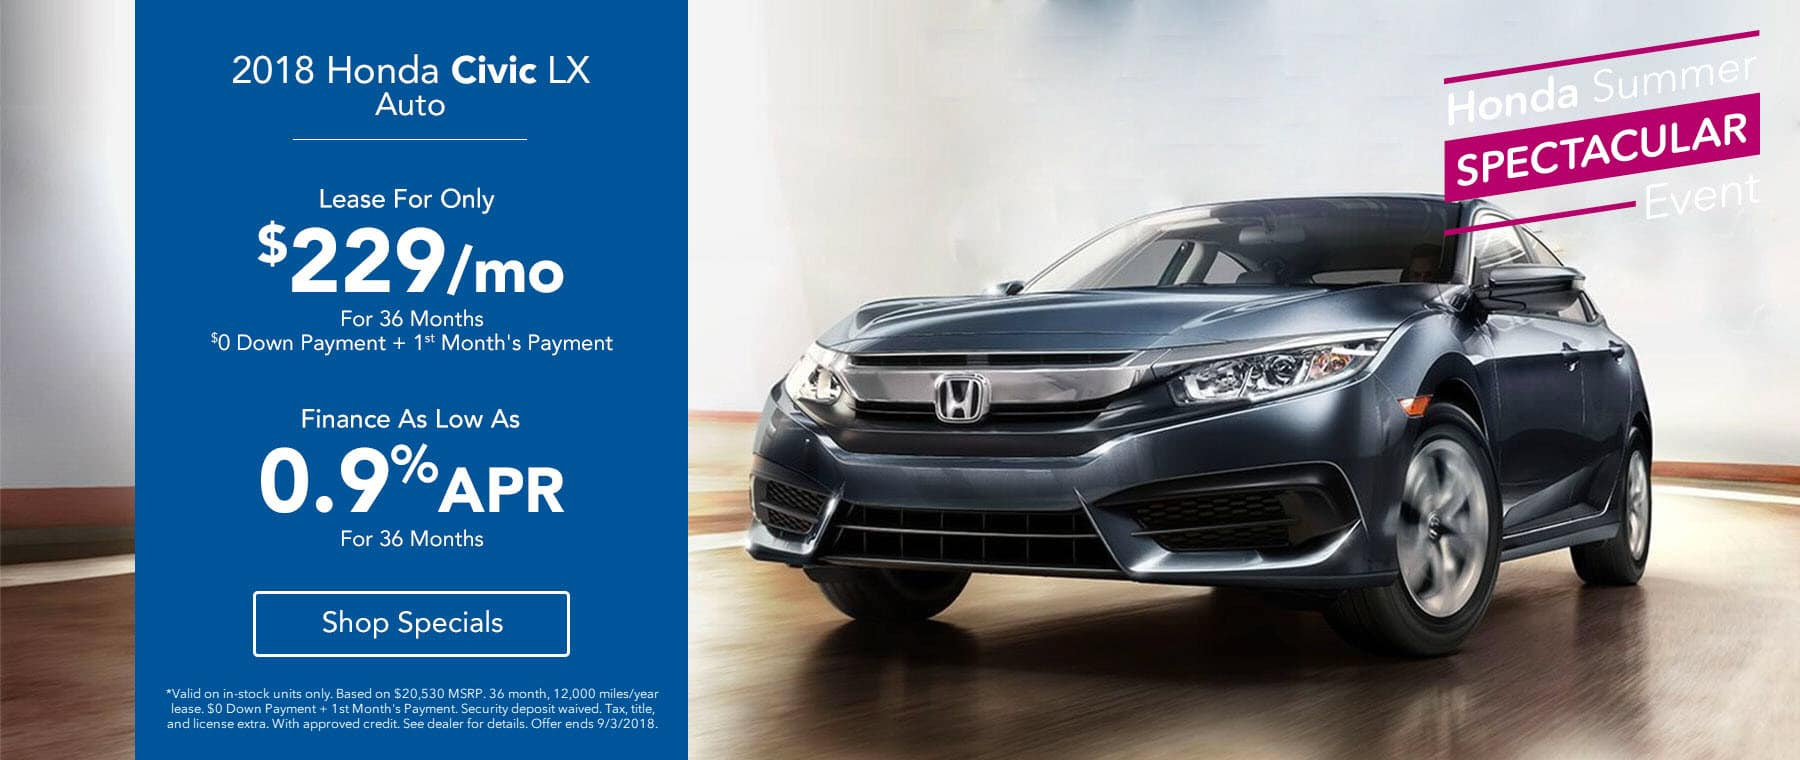 2018 Honda Civic LX Auto Lease for $229/mo